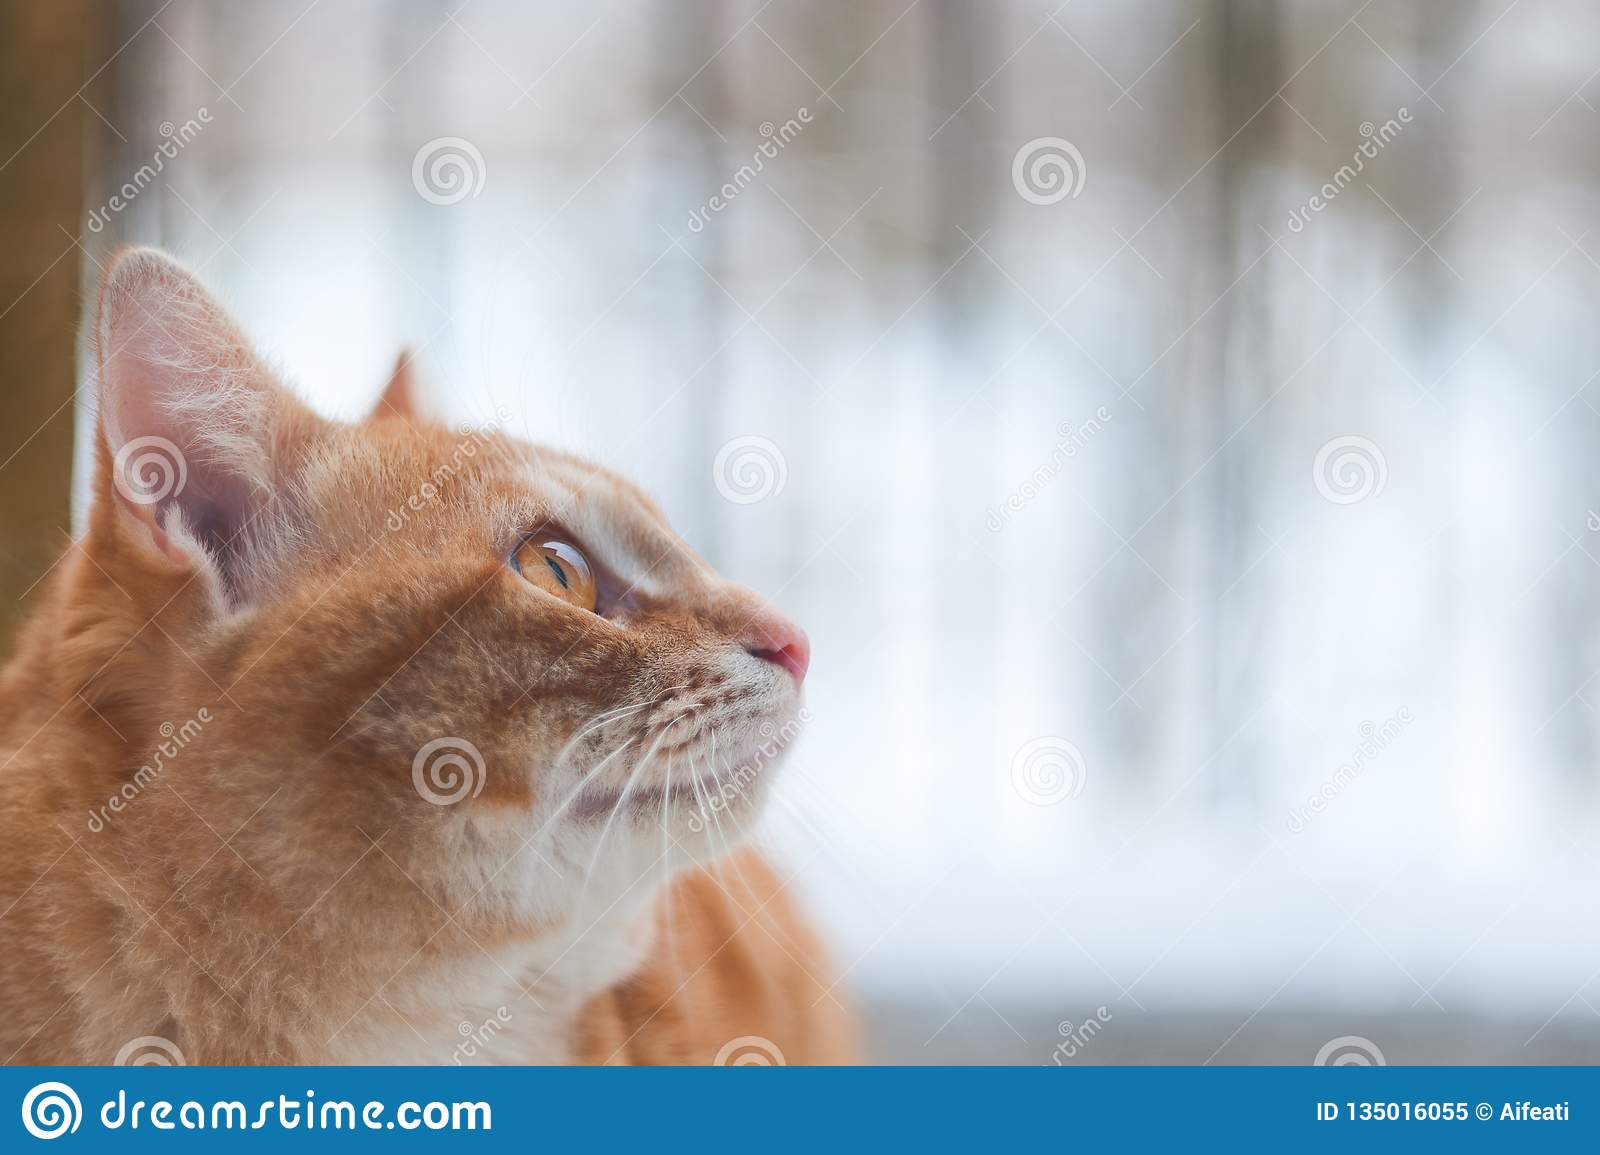 Kant van Ginger Cat Looking Something With Nature-Achtergrond Zijaanzicht van Ginger Cat Looking Forward